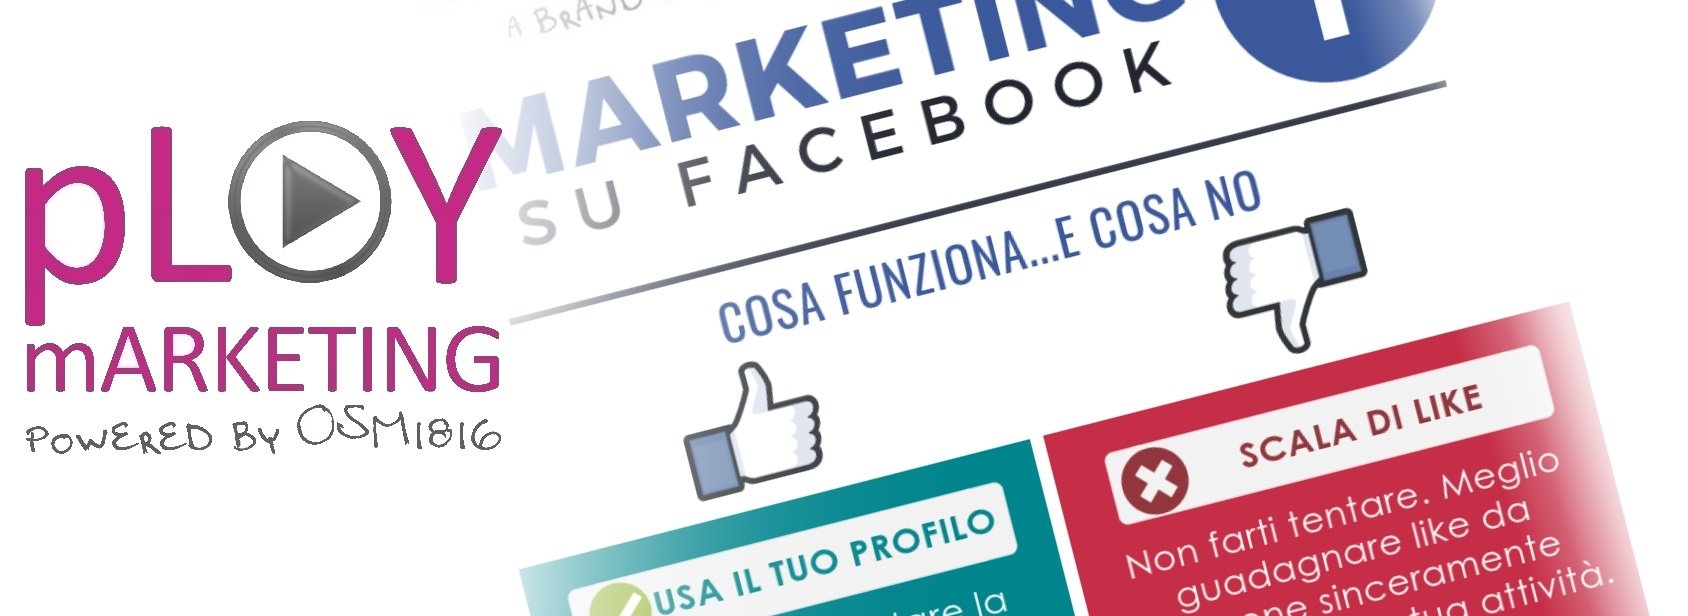 Marketing su Facebook: cosa funziona?